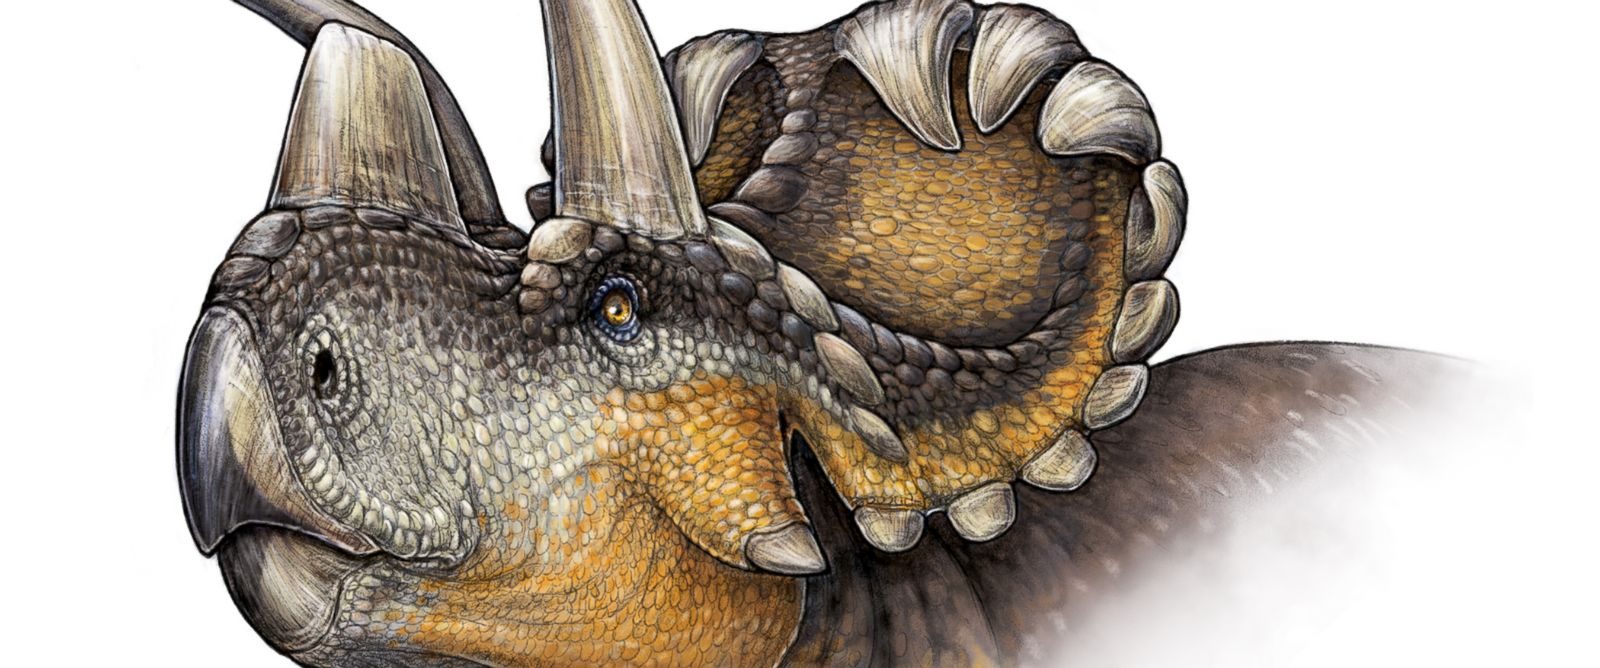 PHOTO: An illustration of the newly discovered Wendiceratops Dinosaur.